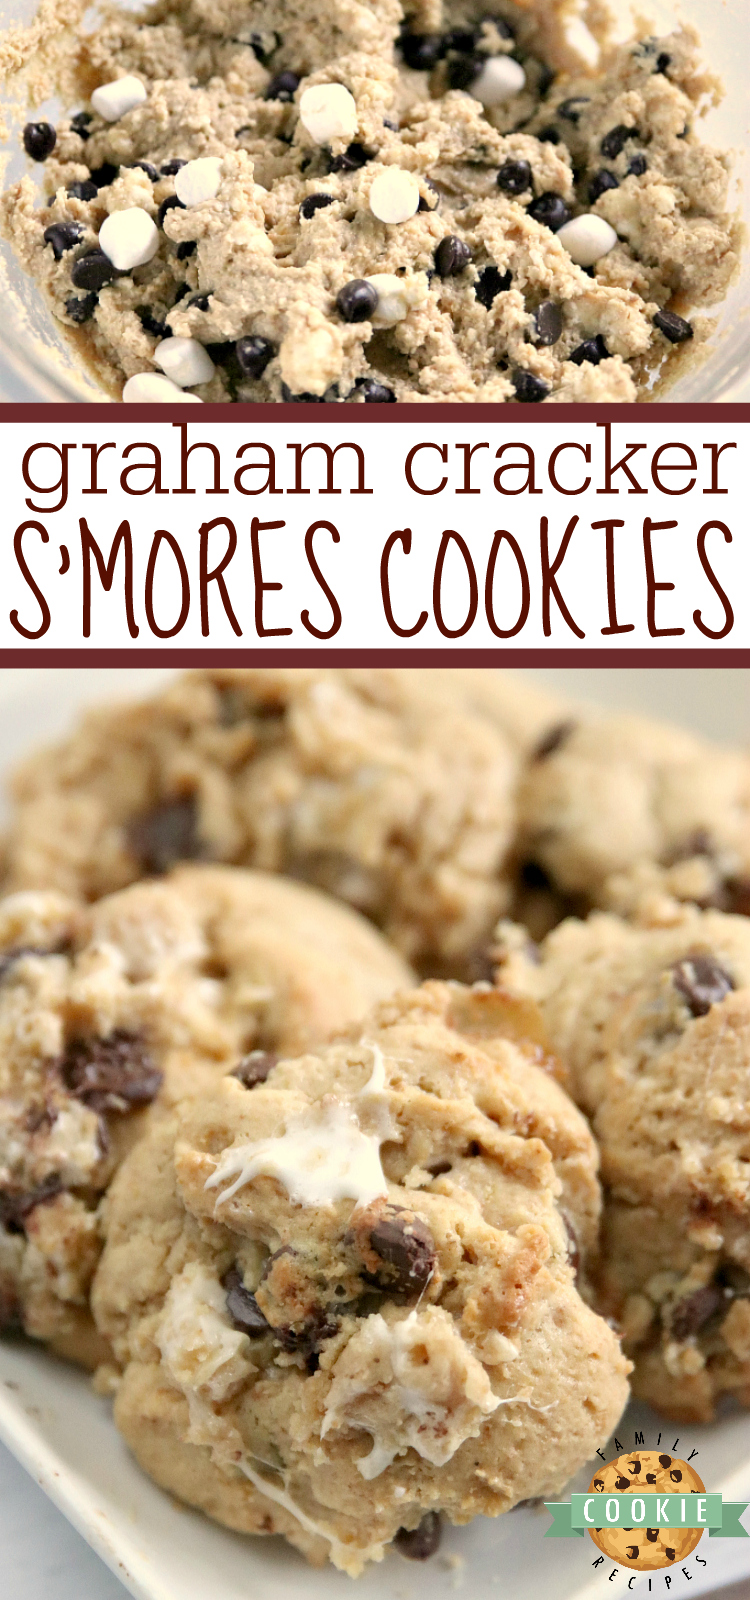 Graham Cracker S'mores Cookies are made with graham cracker crumbs, marshmallows and chocolate chips. All of the elements of a s'more in a deliciously soft and chewy cookie recipe! via @familycookierecipes